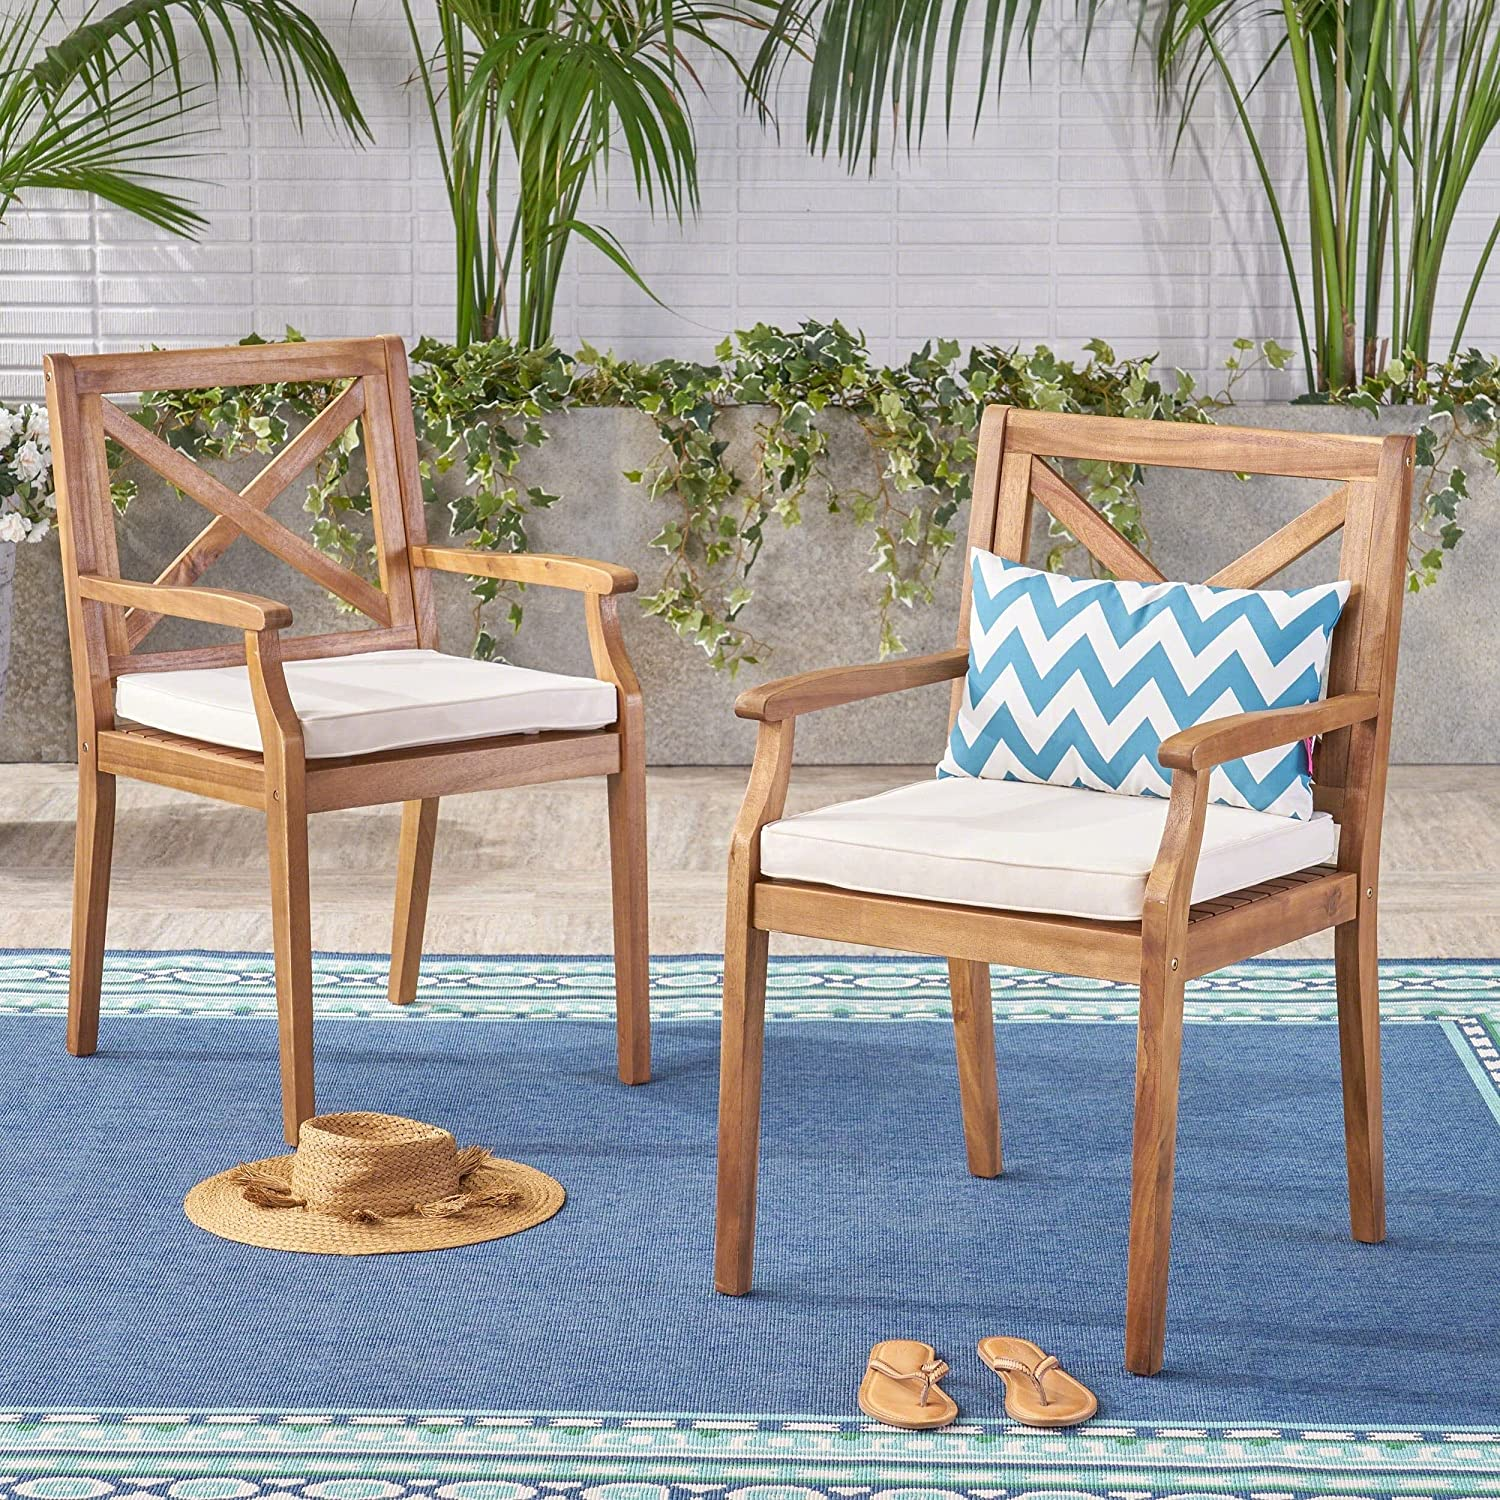 Christopher Knight Home Perla Outdoor Wood Chair Acacia Regular discount Dining Special price